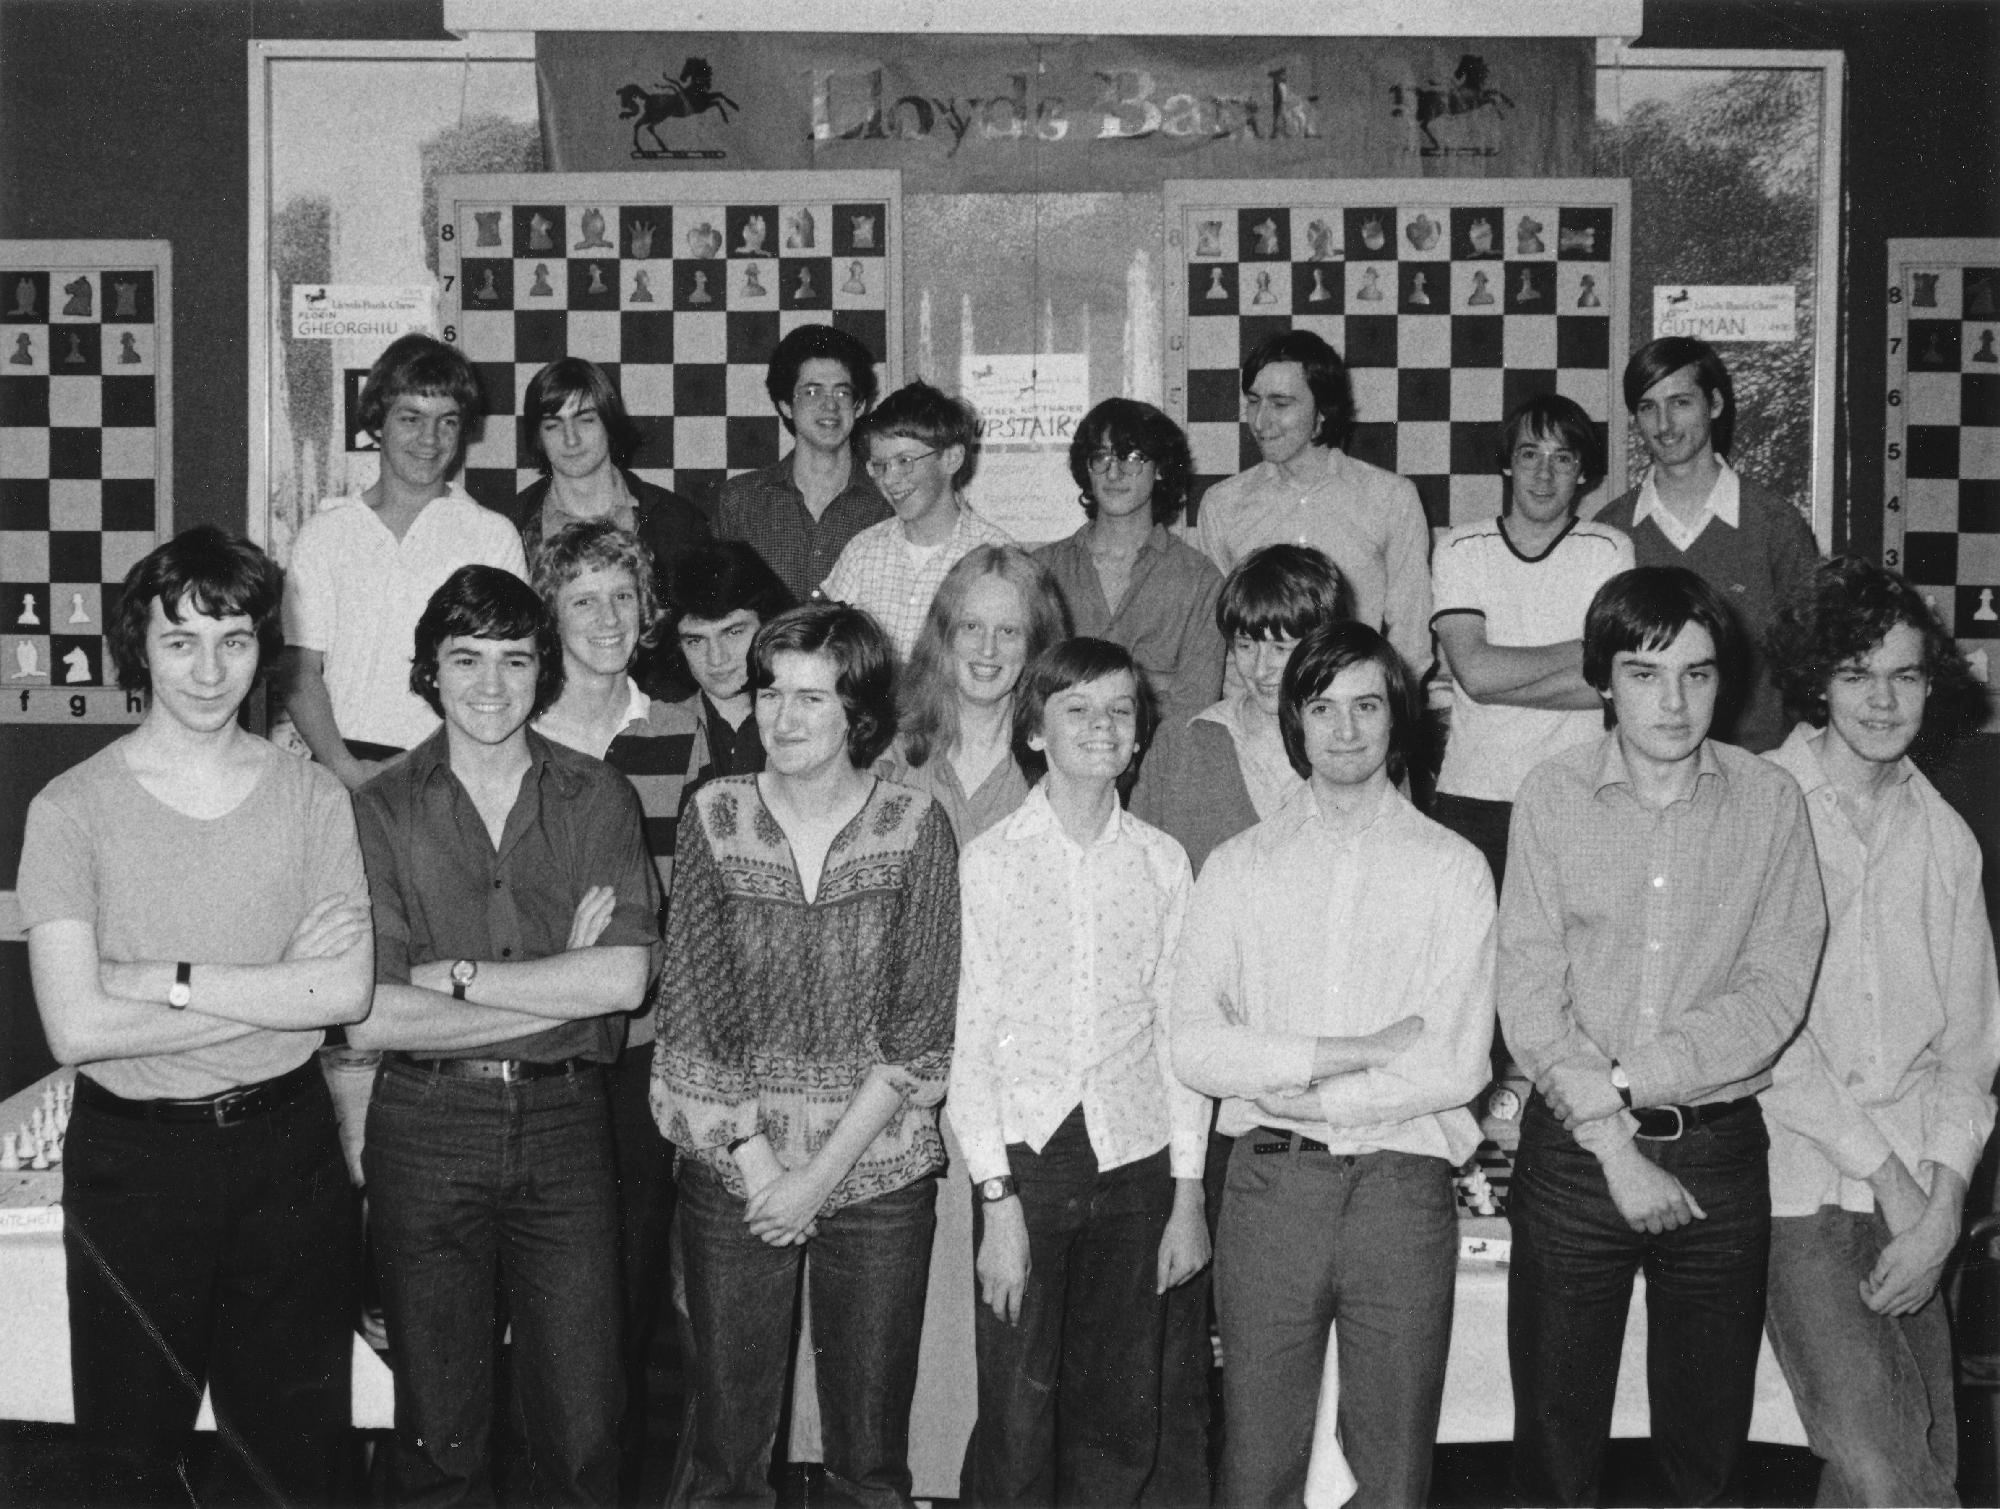 IM Byron Jacobs (front, fourth from left) at a Lloyds Bank event